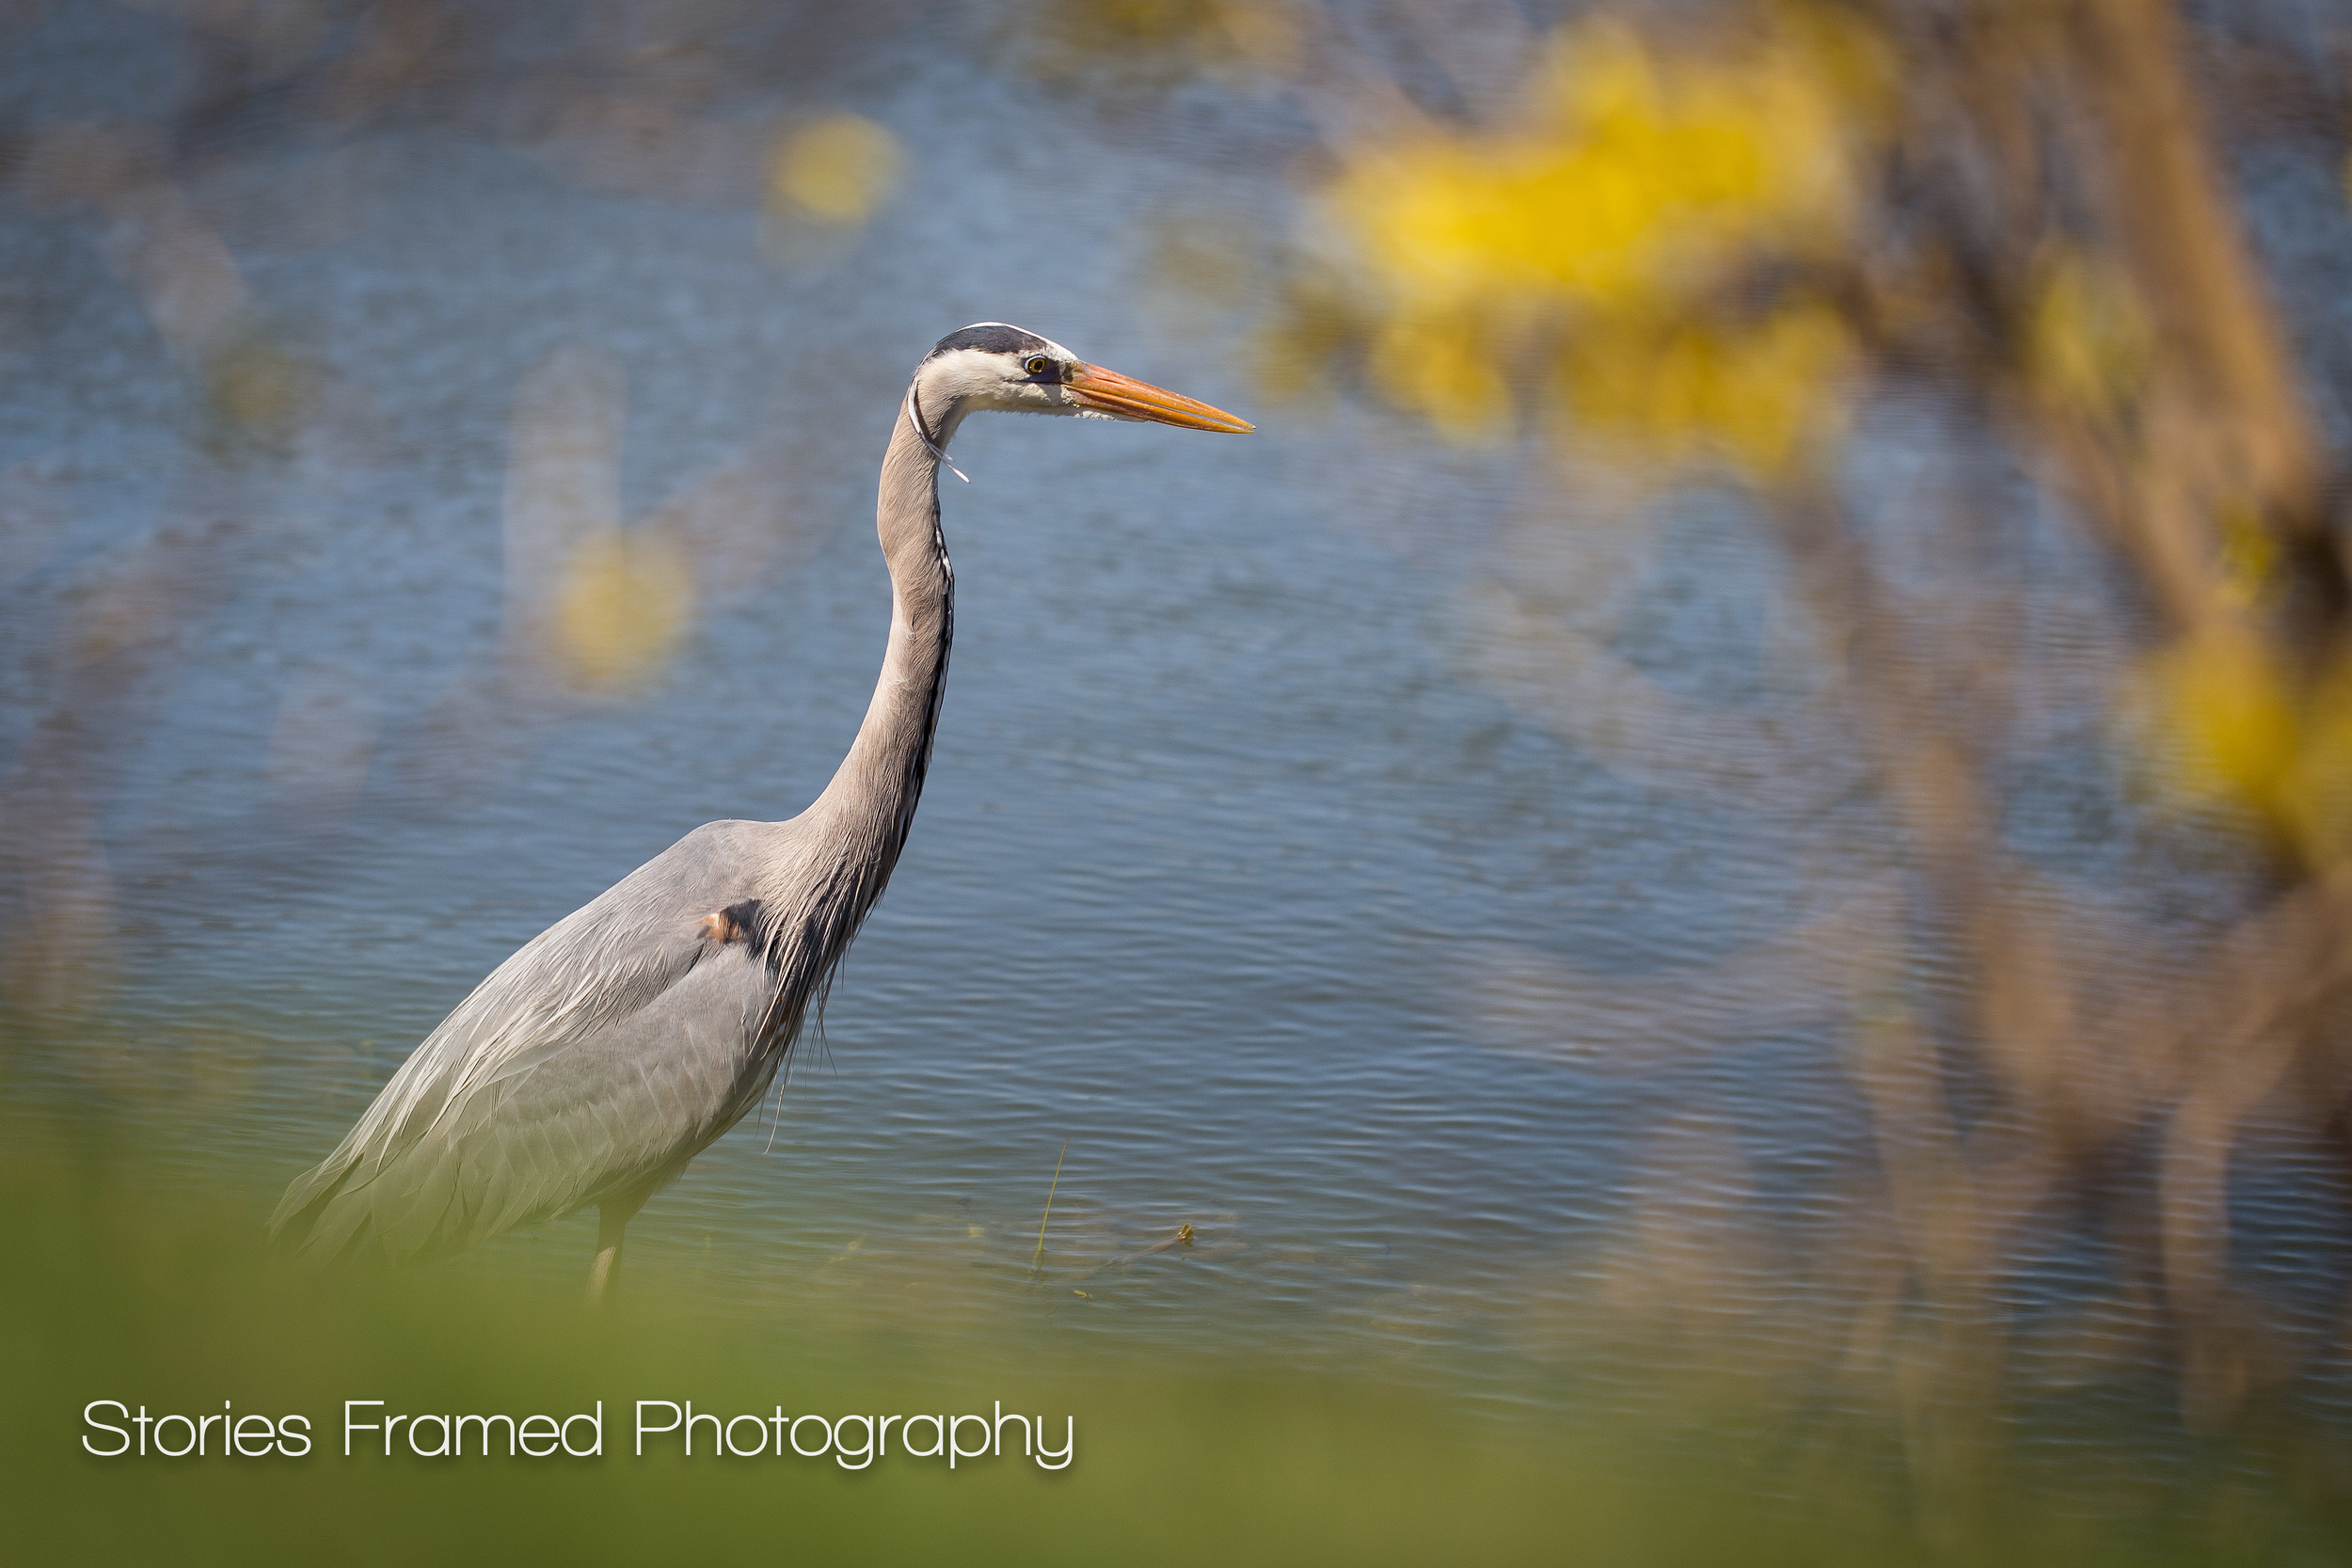 Stories Framed Photography | bird looking for food